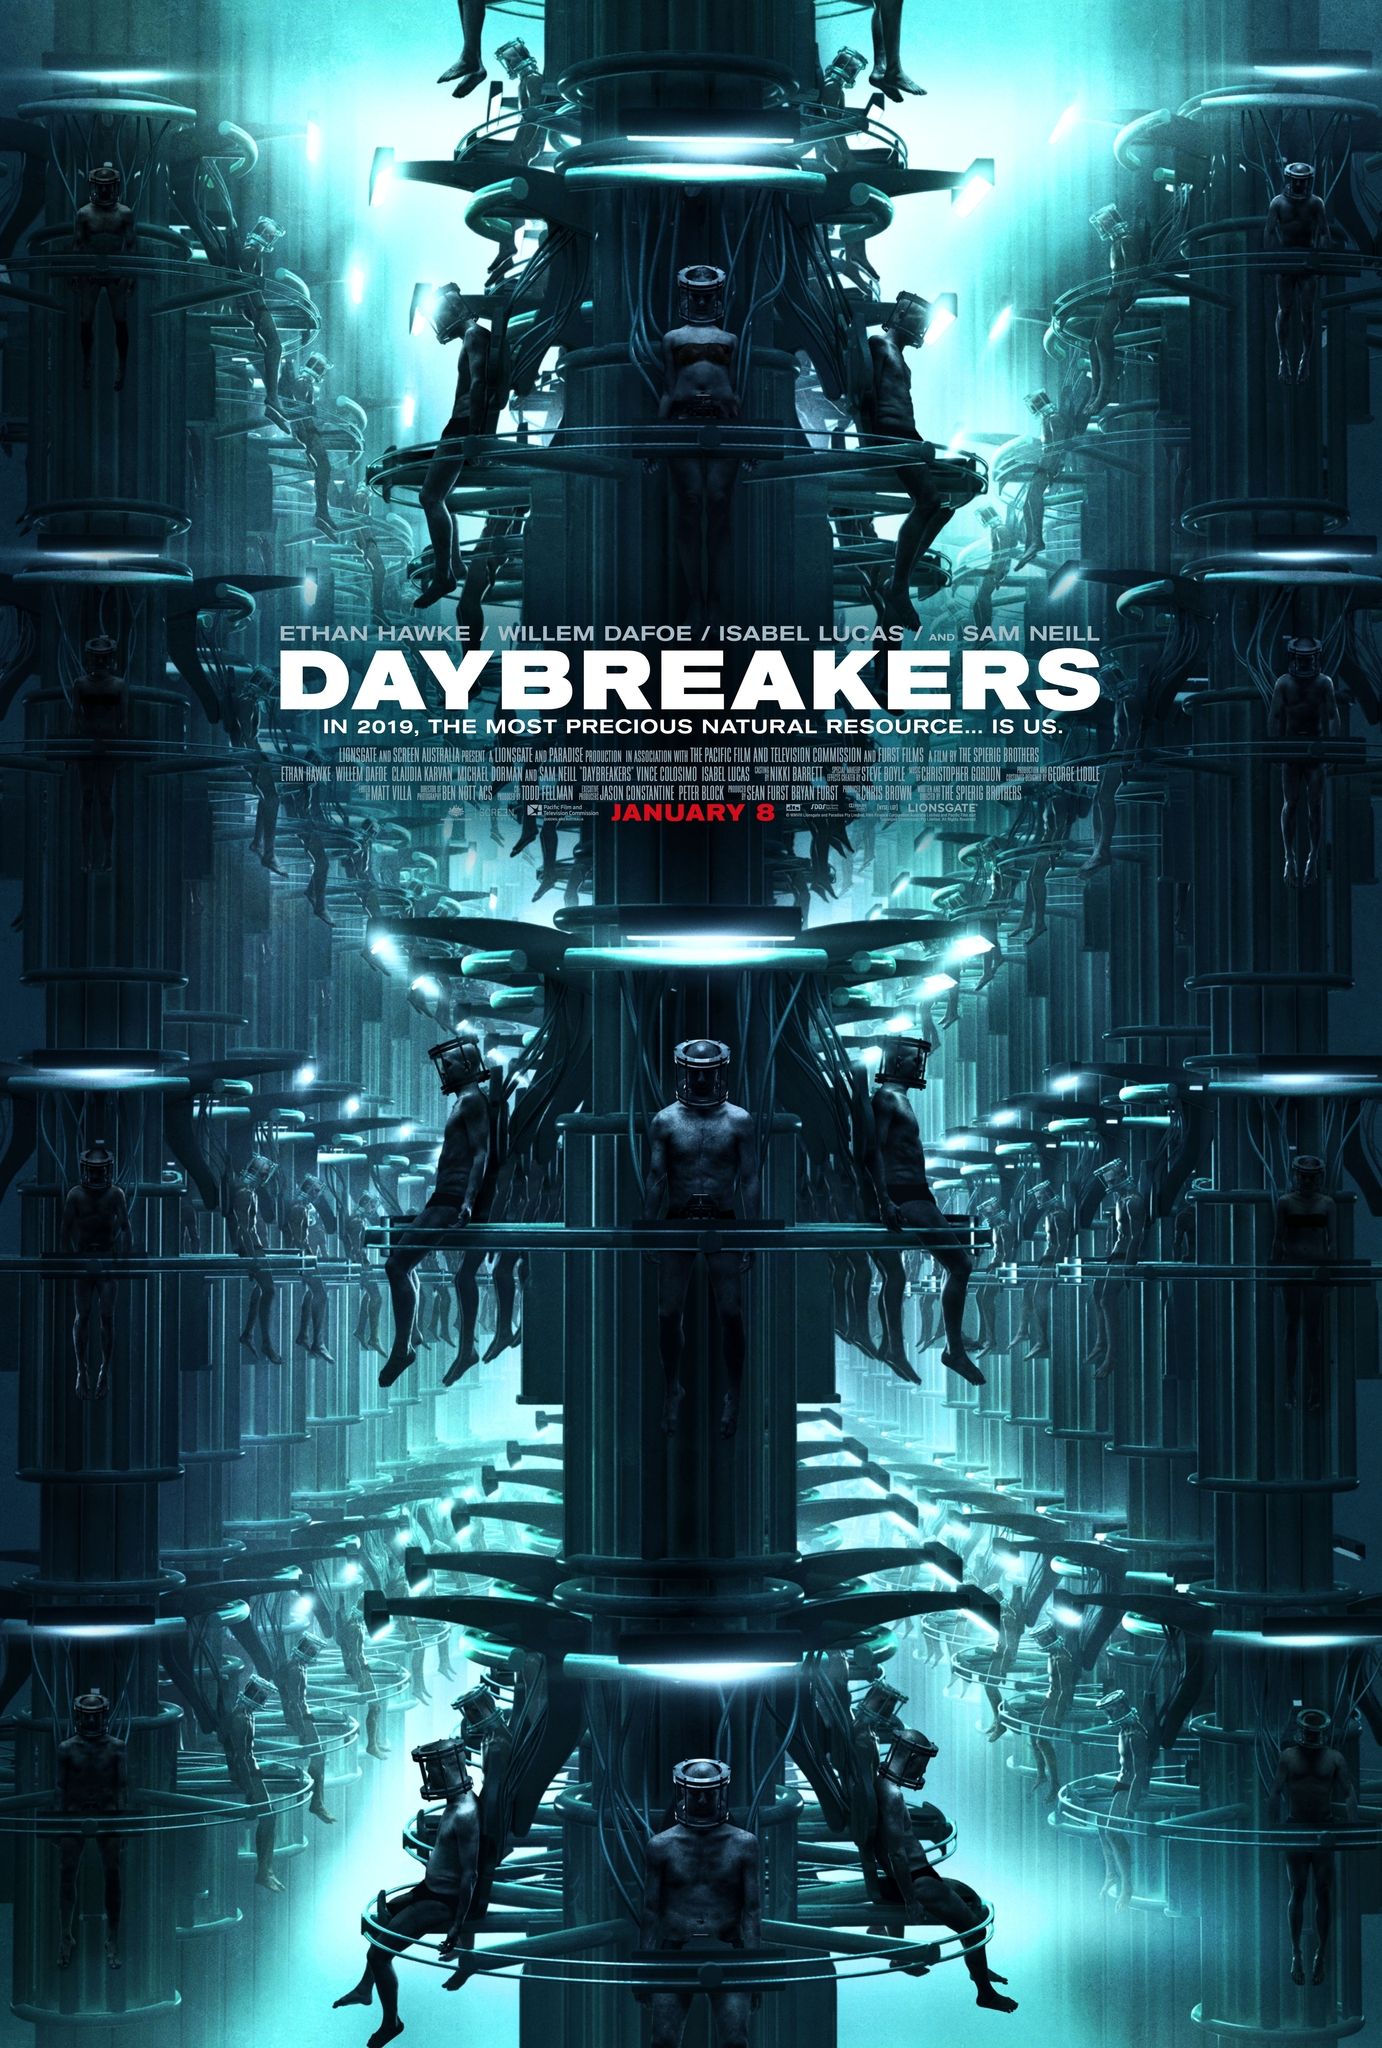 Daybreakers (2009) - IMDb